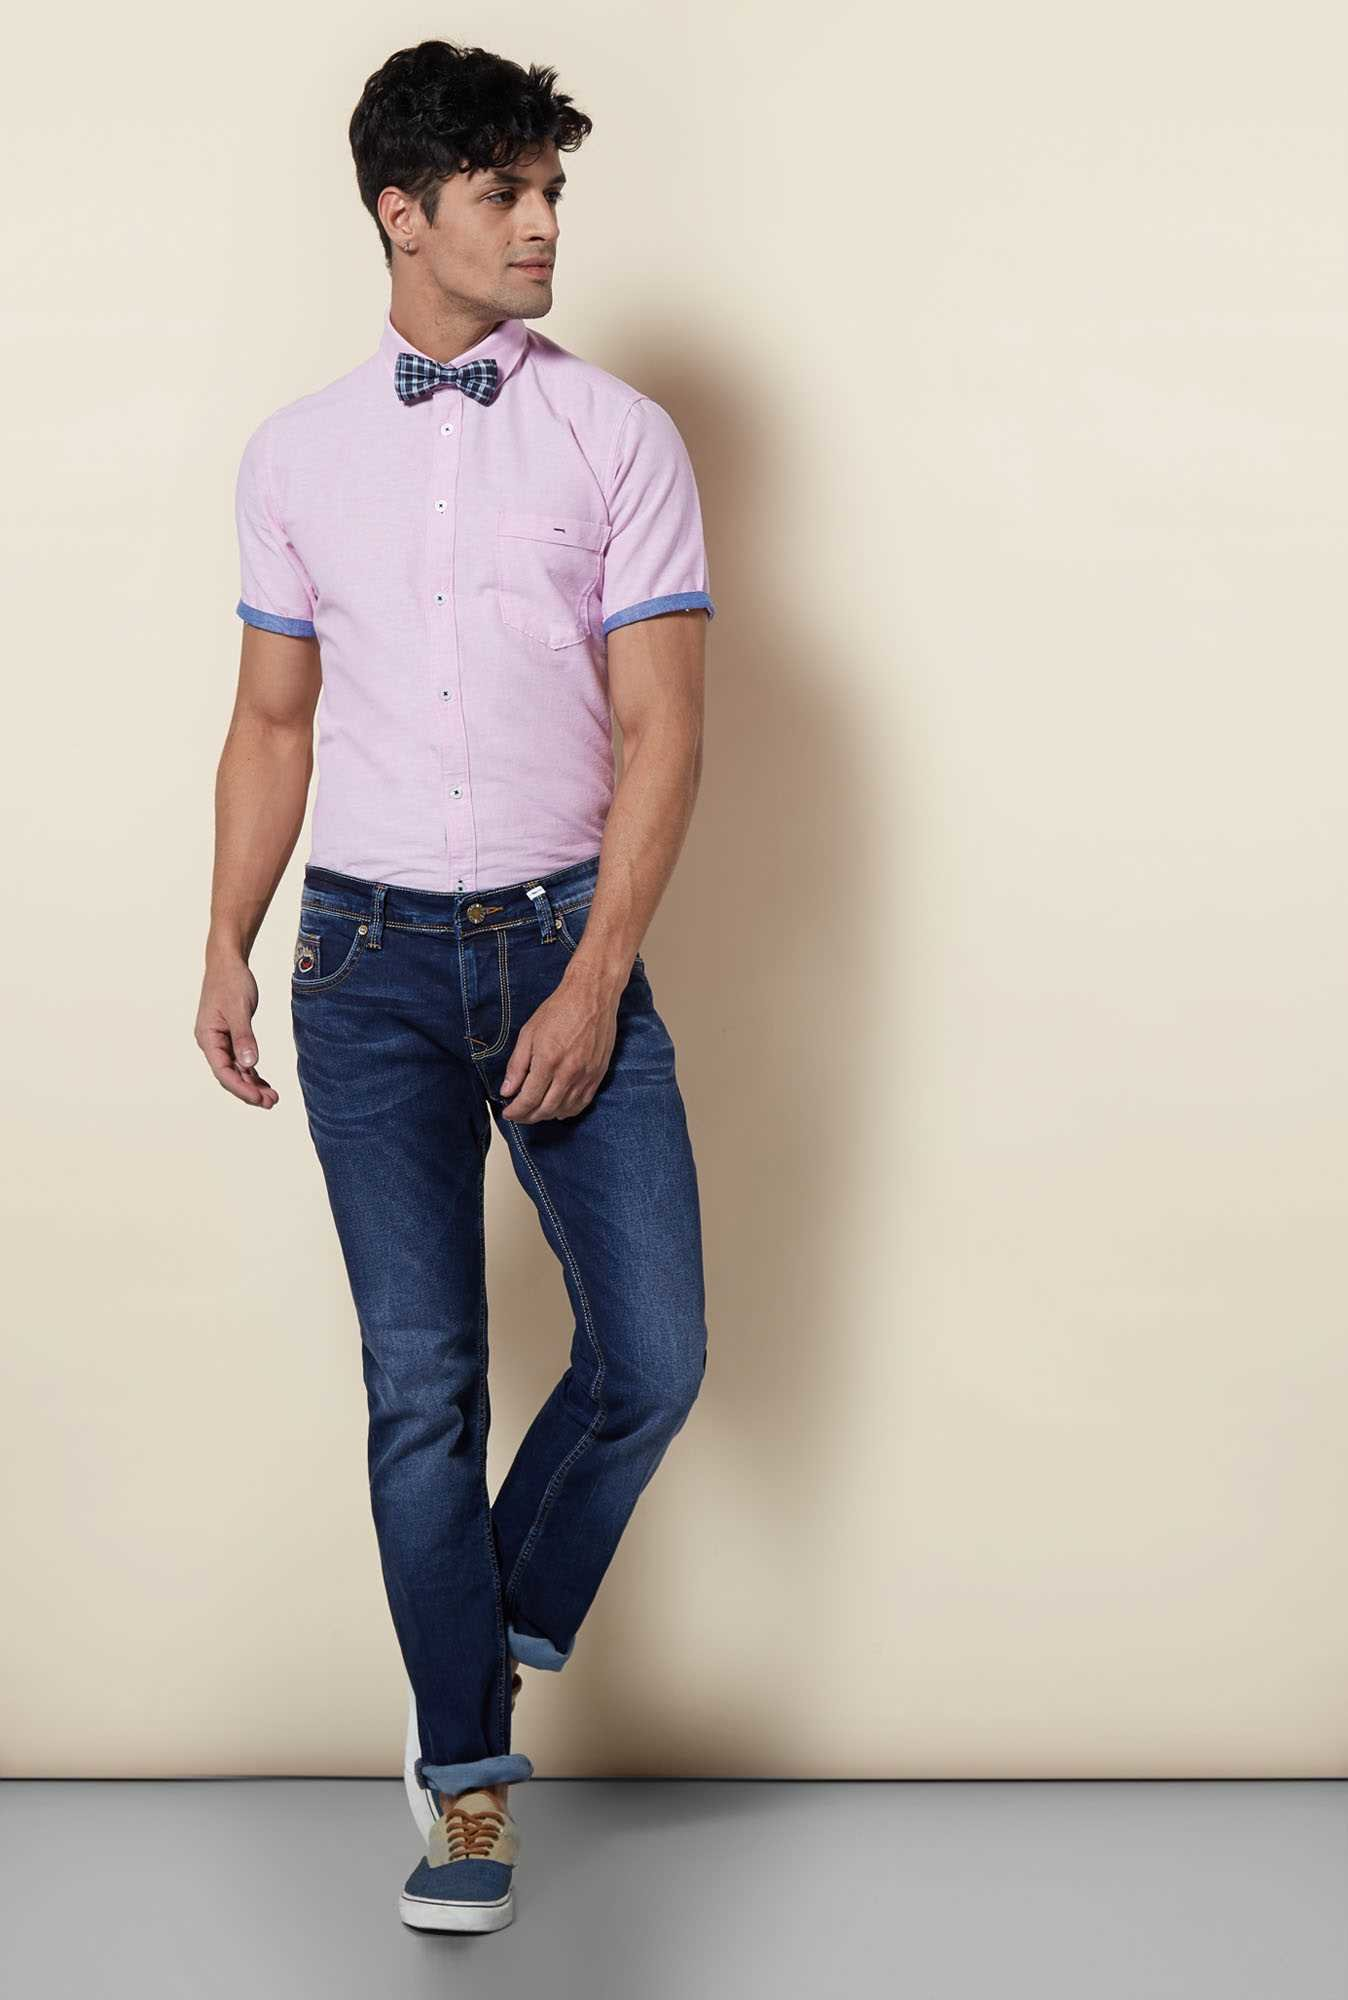 Lawman Light Pink Short Sleeve Casual Shirt